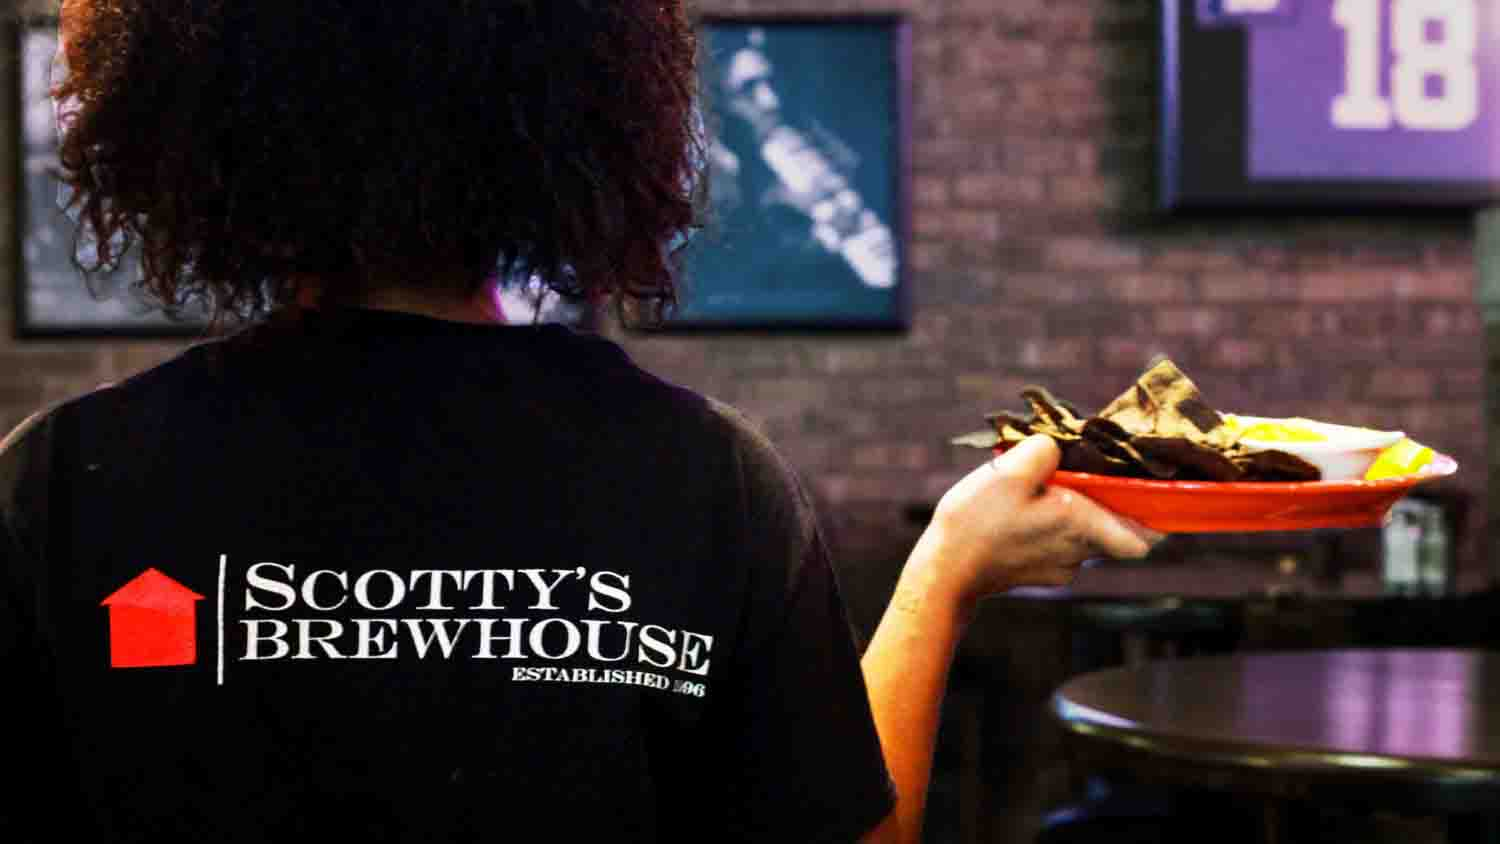 Scottys brewhouse 2